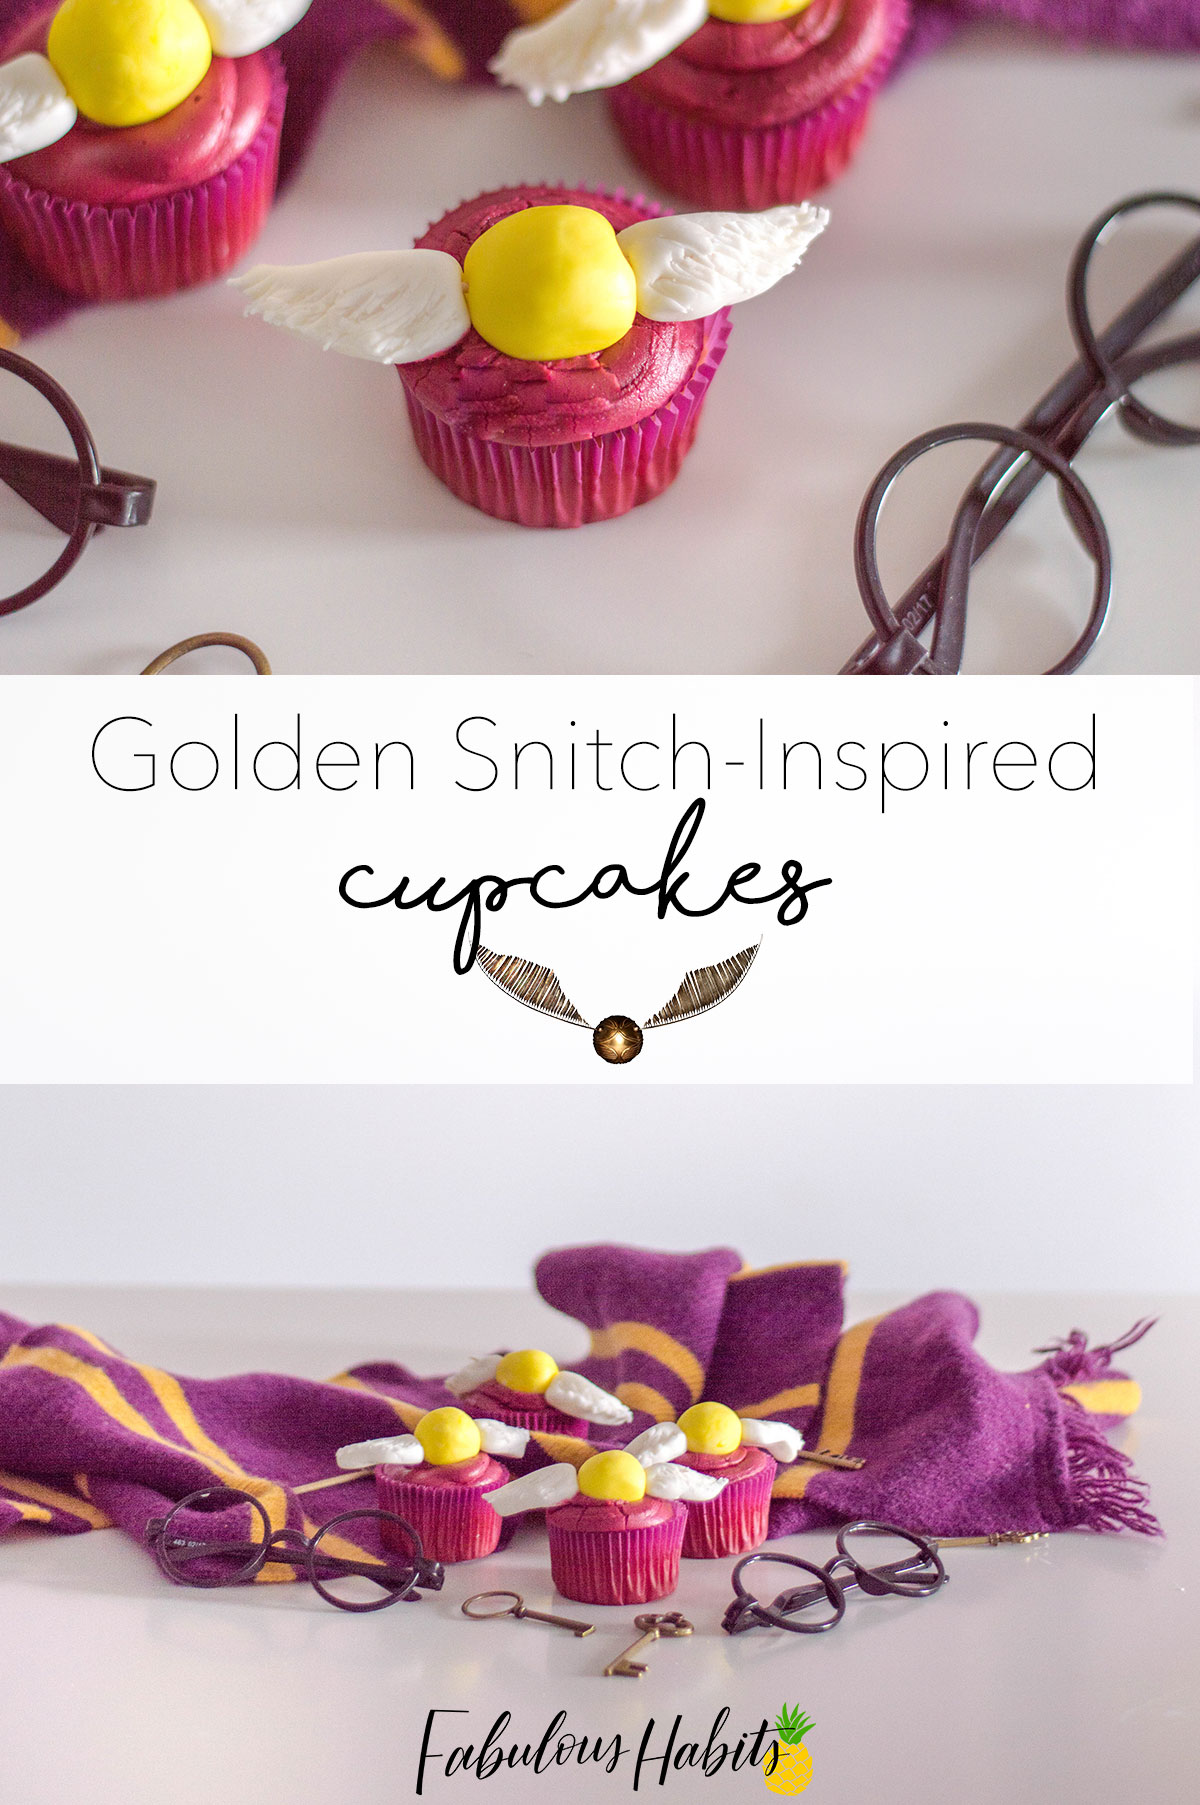 Feeling magical? These Golden Snitch Cupcakes are inspired by our favorite wizard and we can't wait to feast on them!